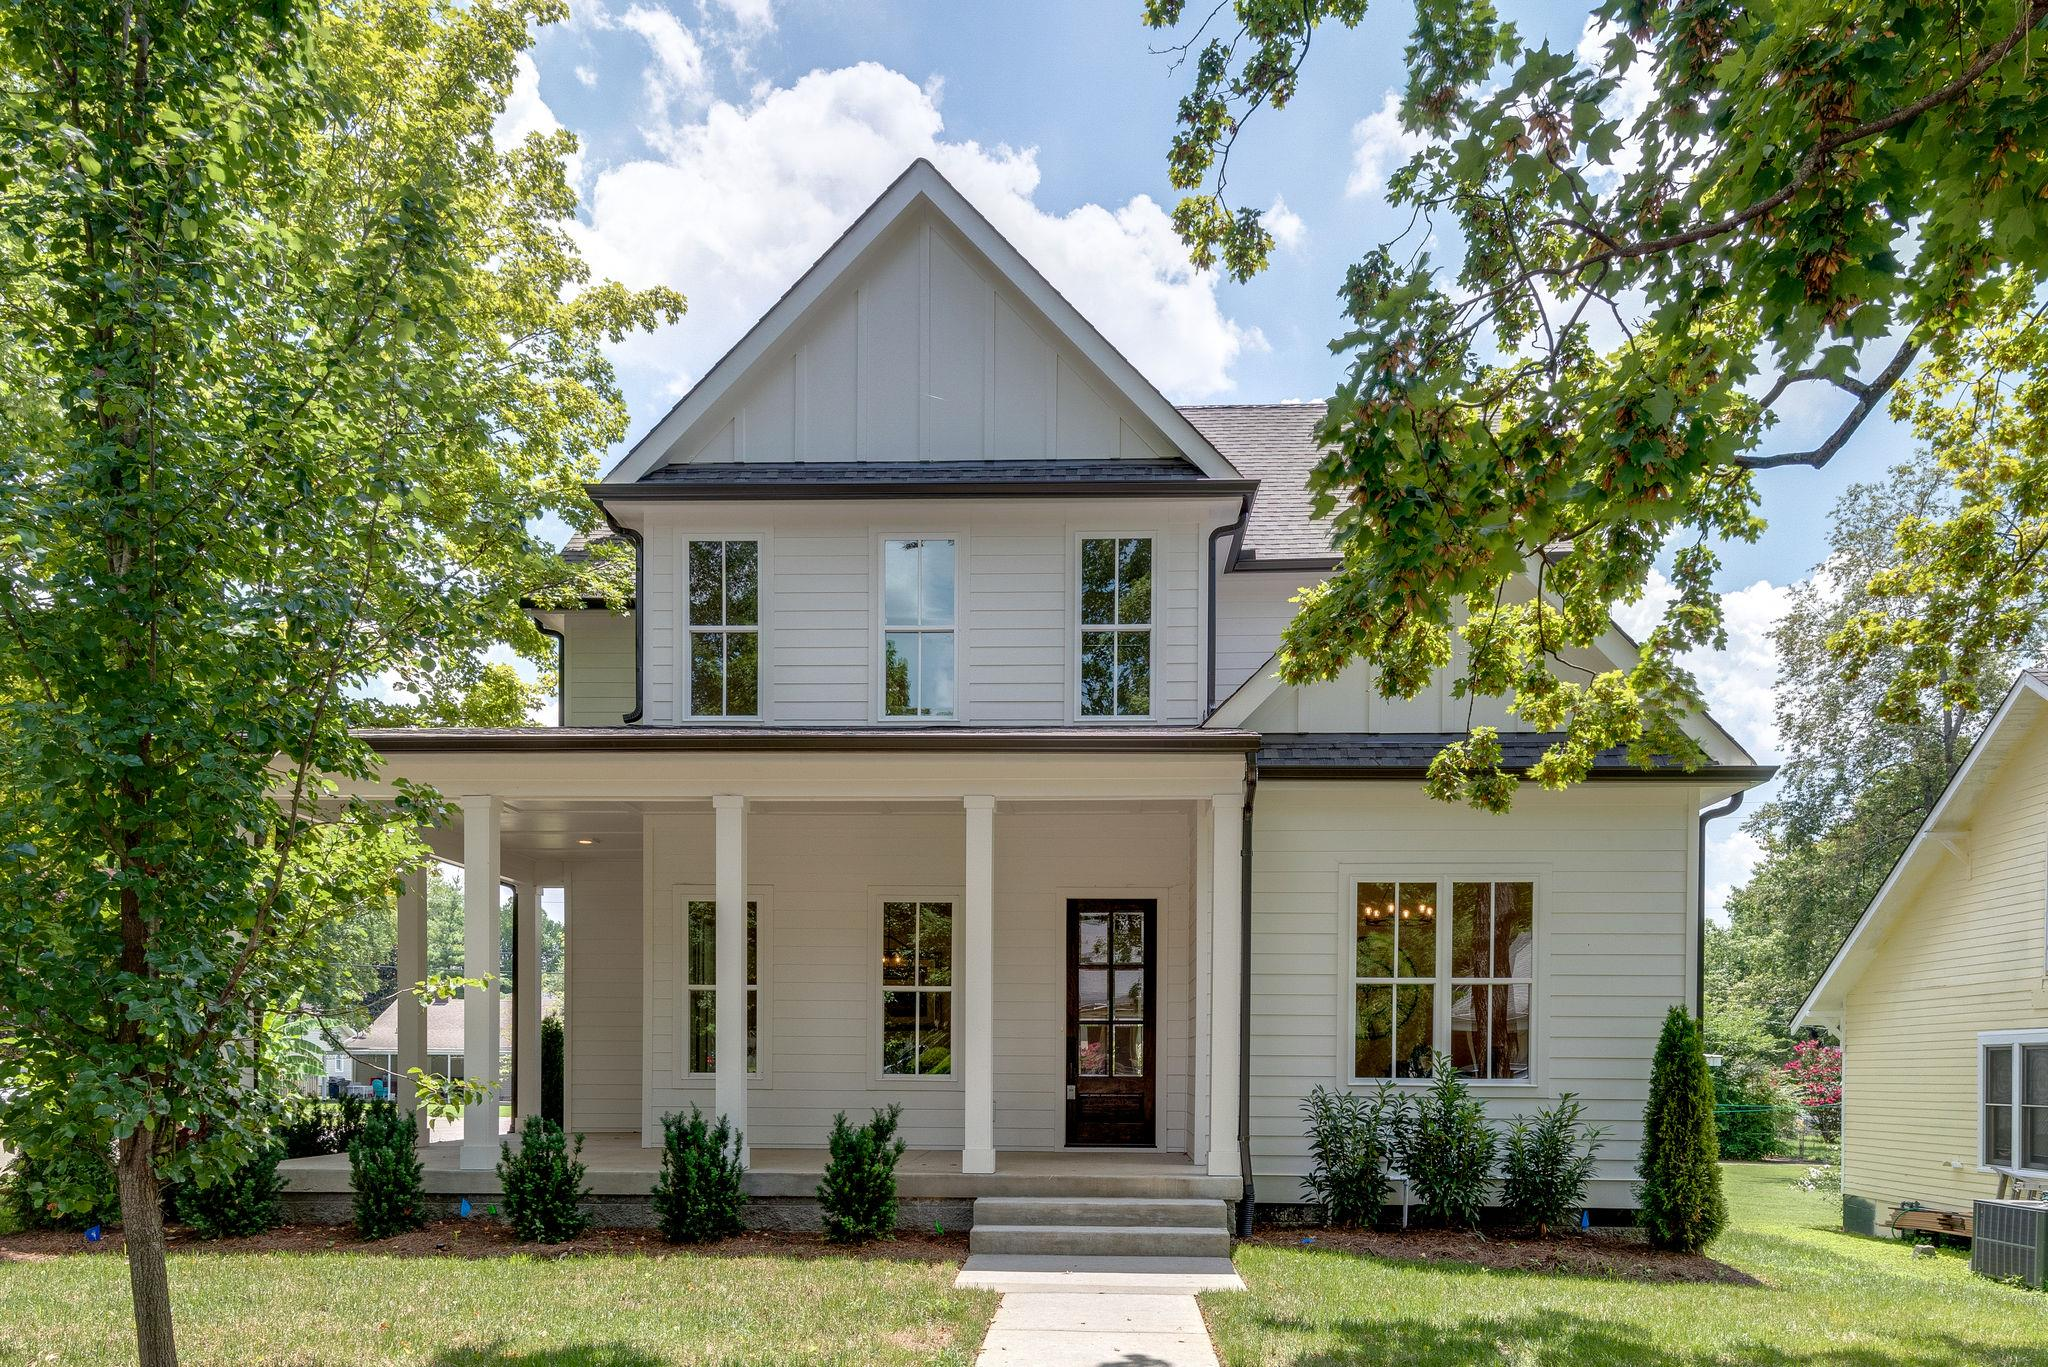 4701 Dakota Ave, Nashville, TN 37209 - Nashville, TN real estate listing